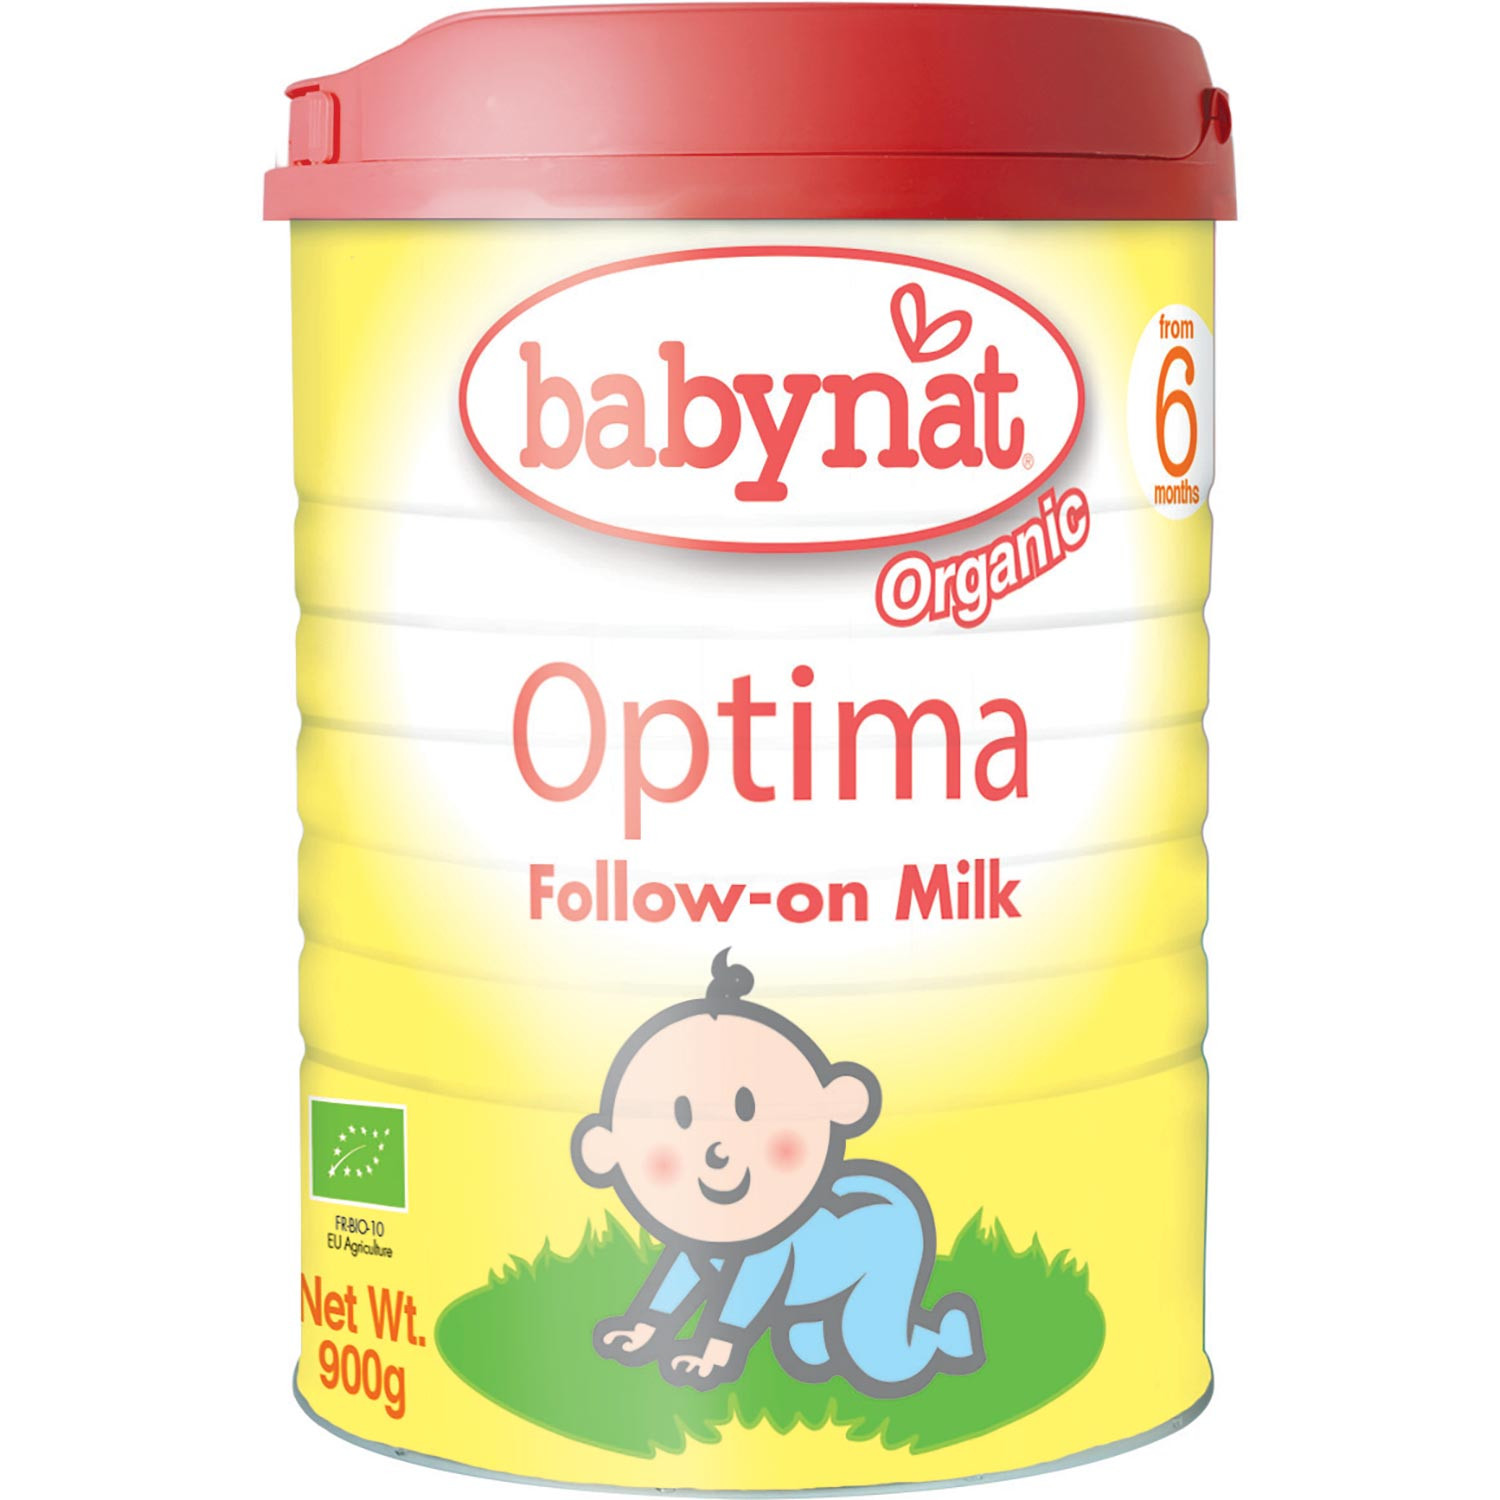 Babynat Organic Optima Follow-On Milk (6 mos. onwards), 900 g